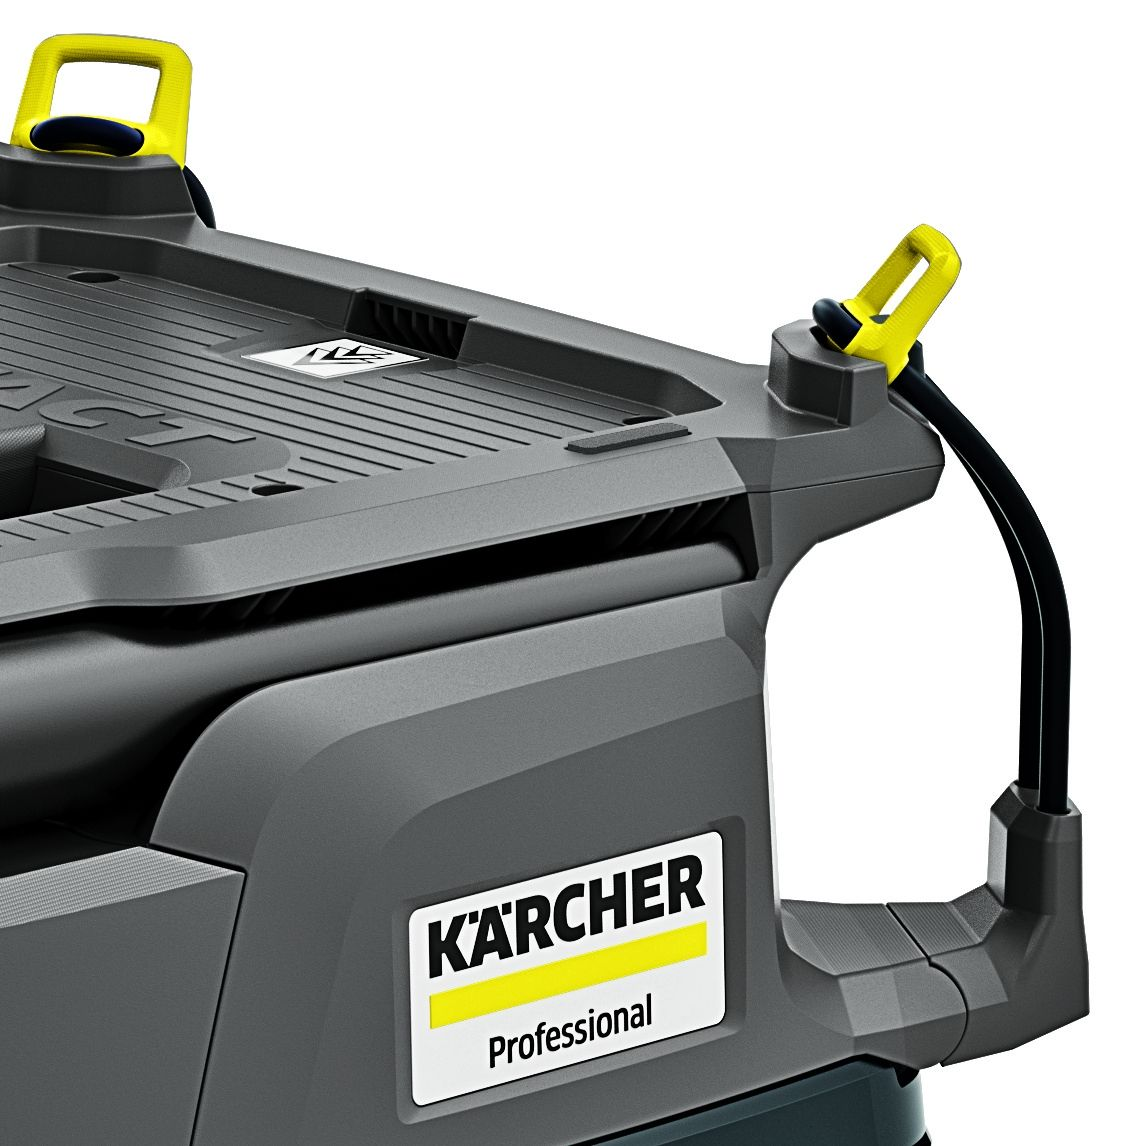 karcher aspirateur nt 30 1 tact l. Black Bedroom Furniture Sets. Home Design Ideas